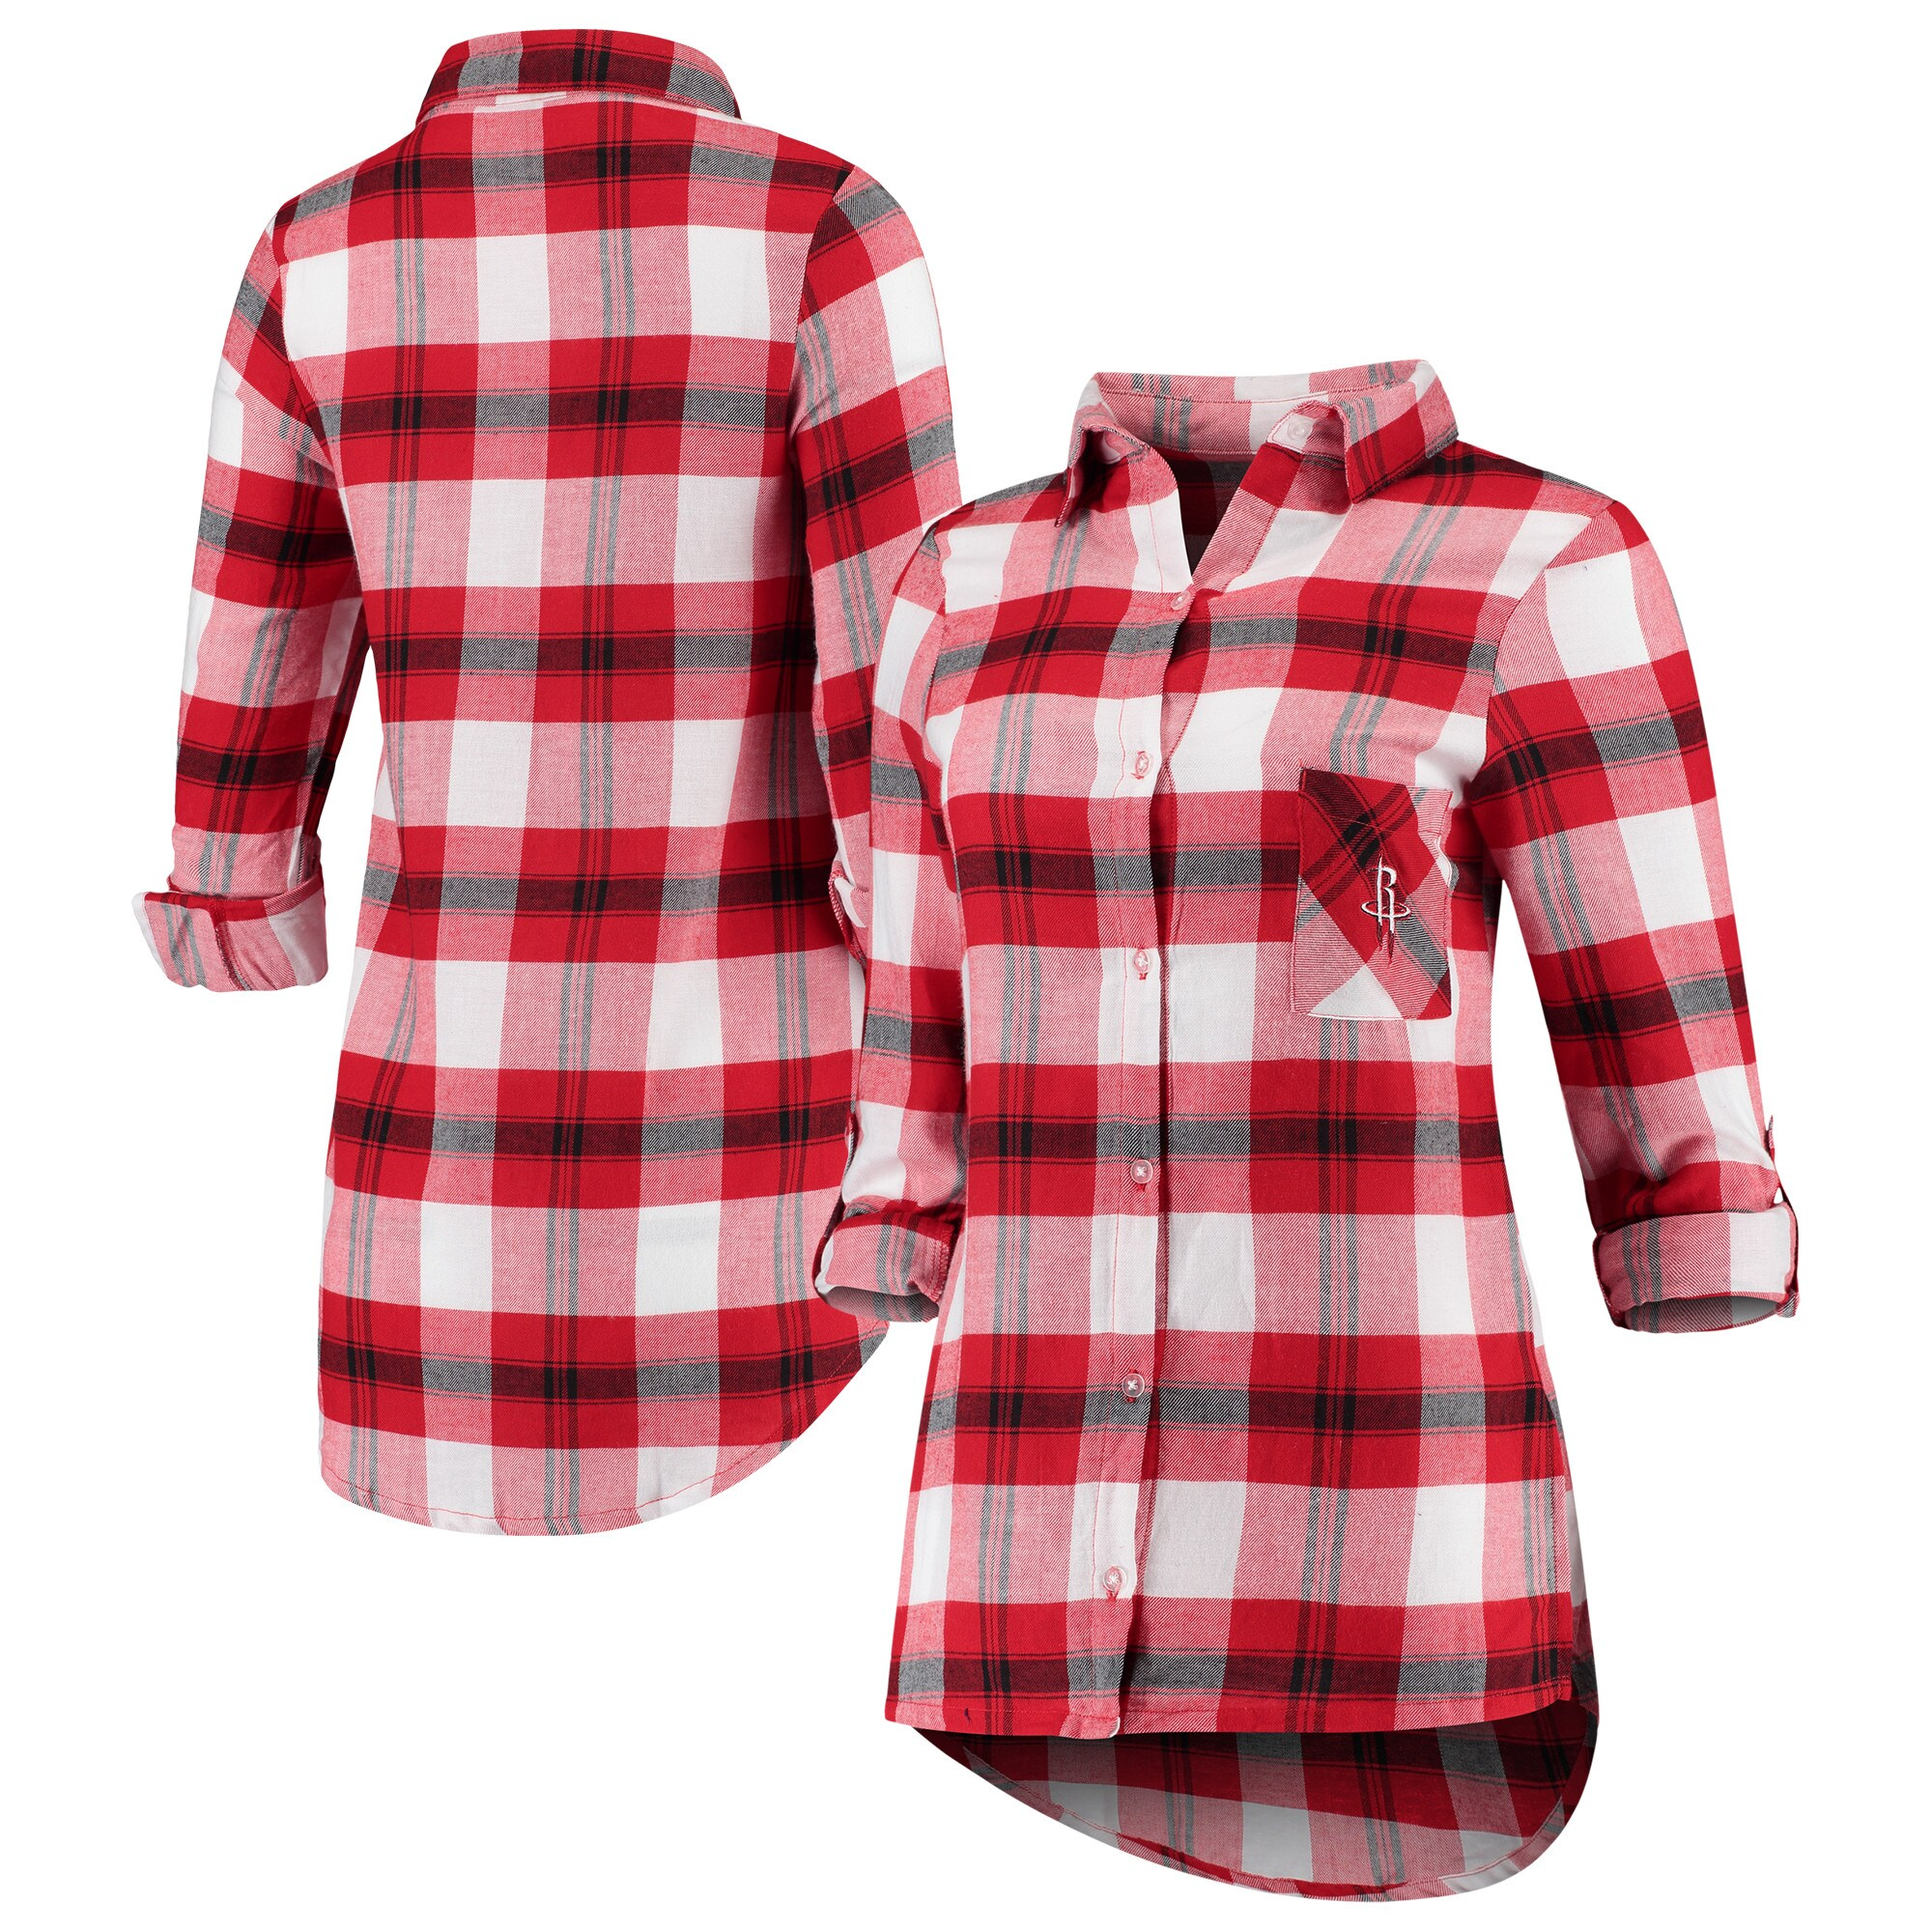 Houston Rockets Concepts Sport Women's Headway Long Sleeve Plaid Tunic - Red/Black